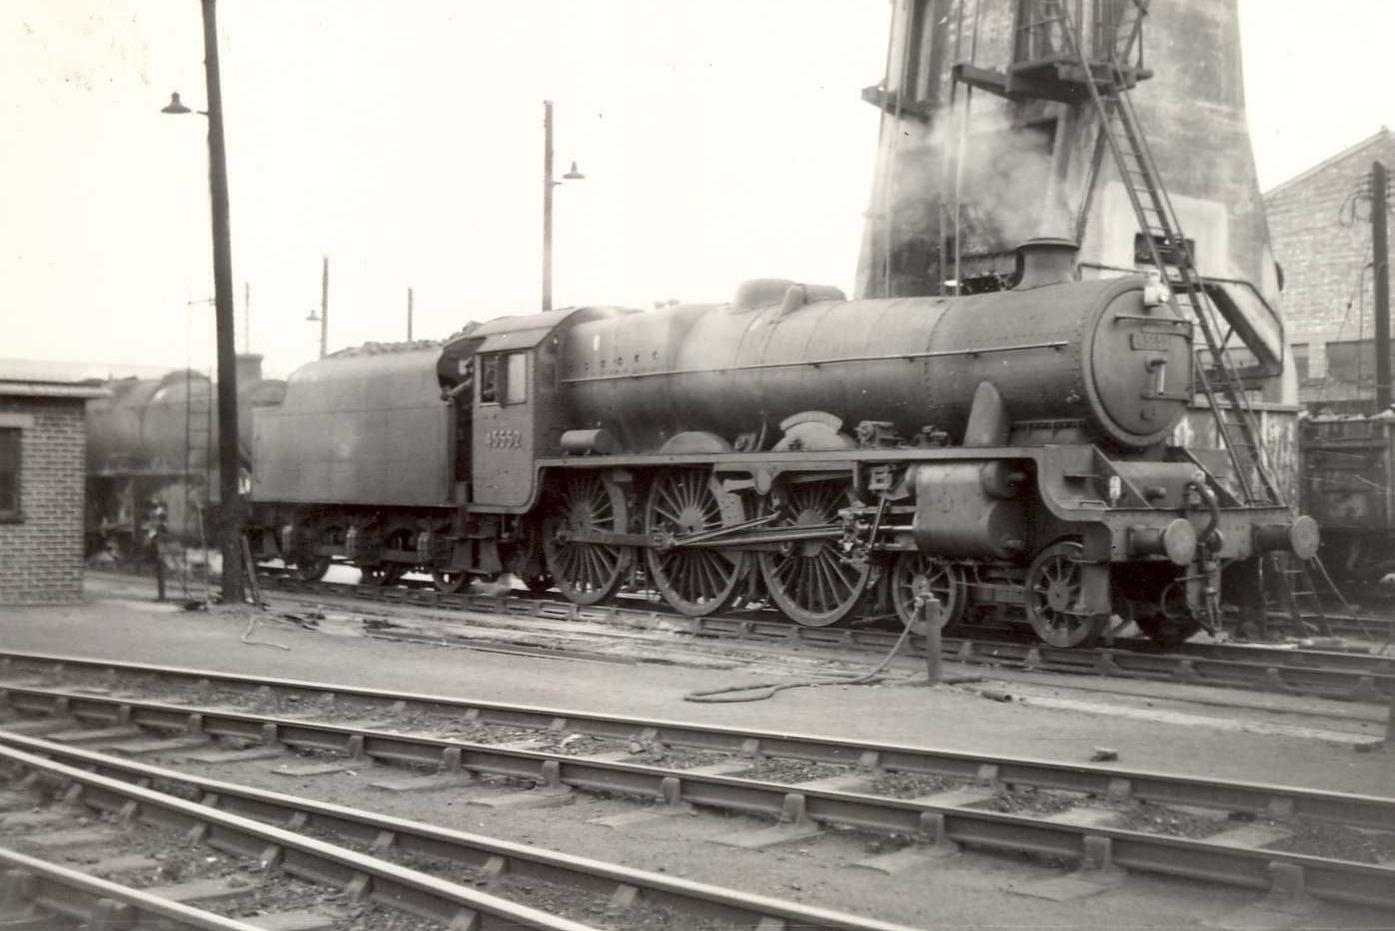 45552 Silver Jubilee at Bushbury shed in 1964